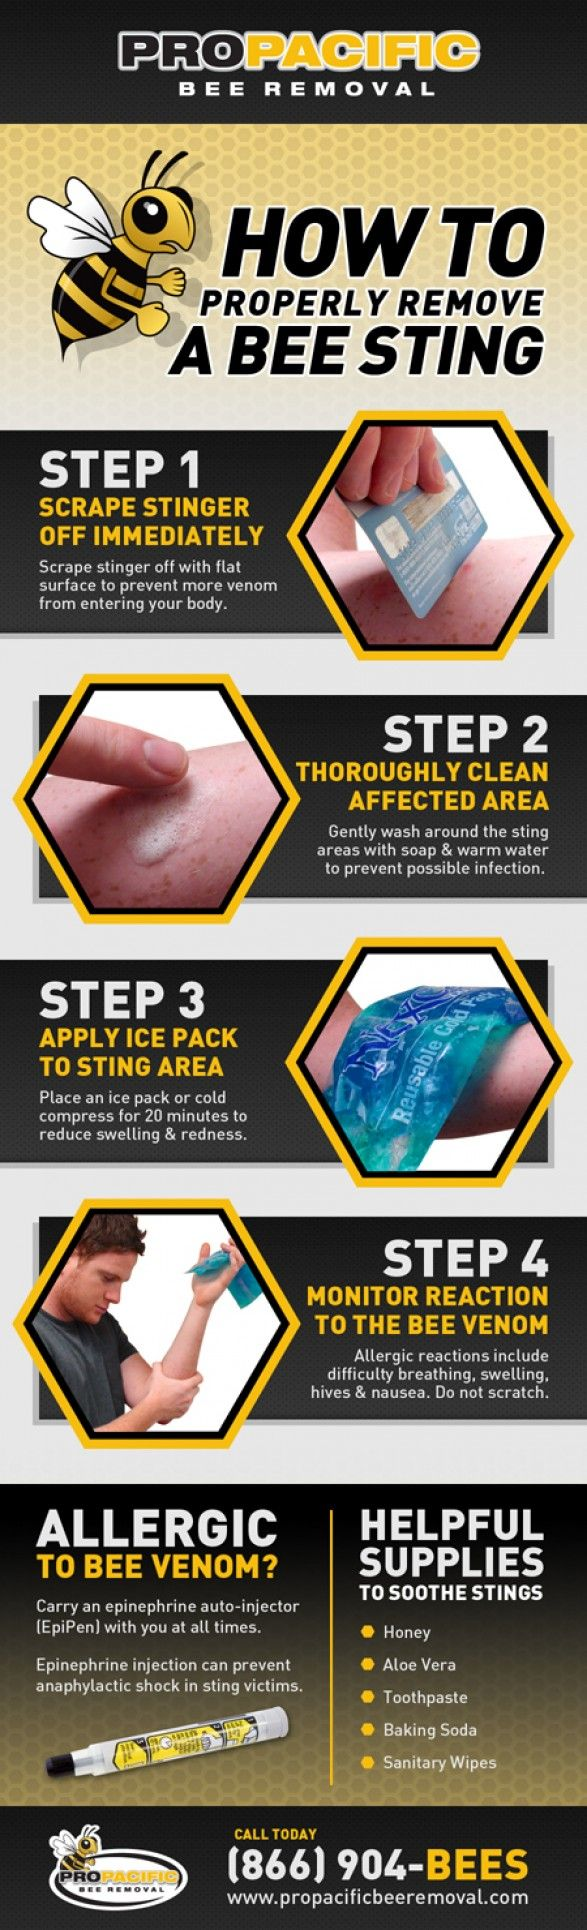 Properly Remove & Treat A Bee Sting - Infographic